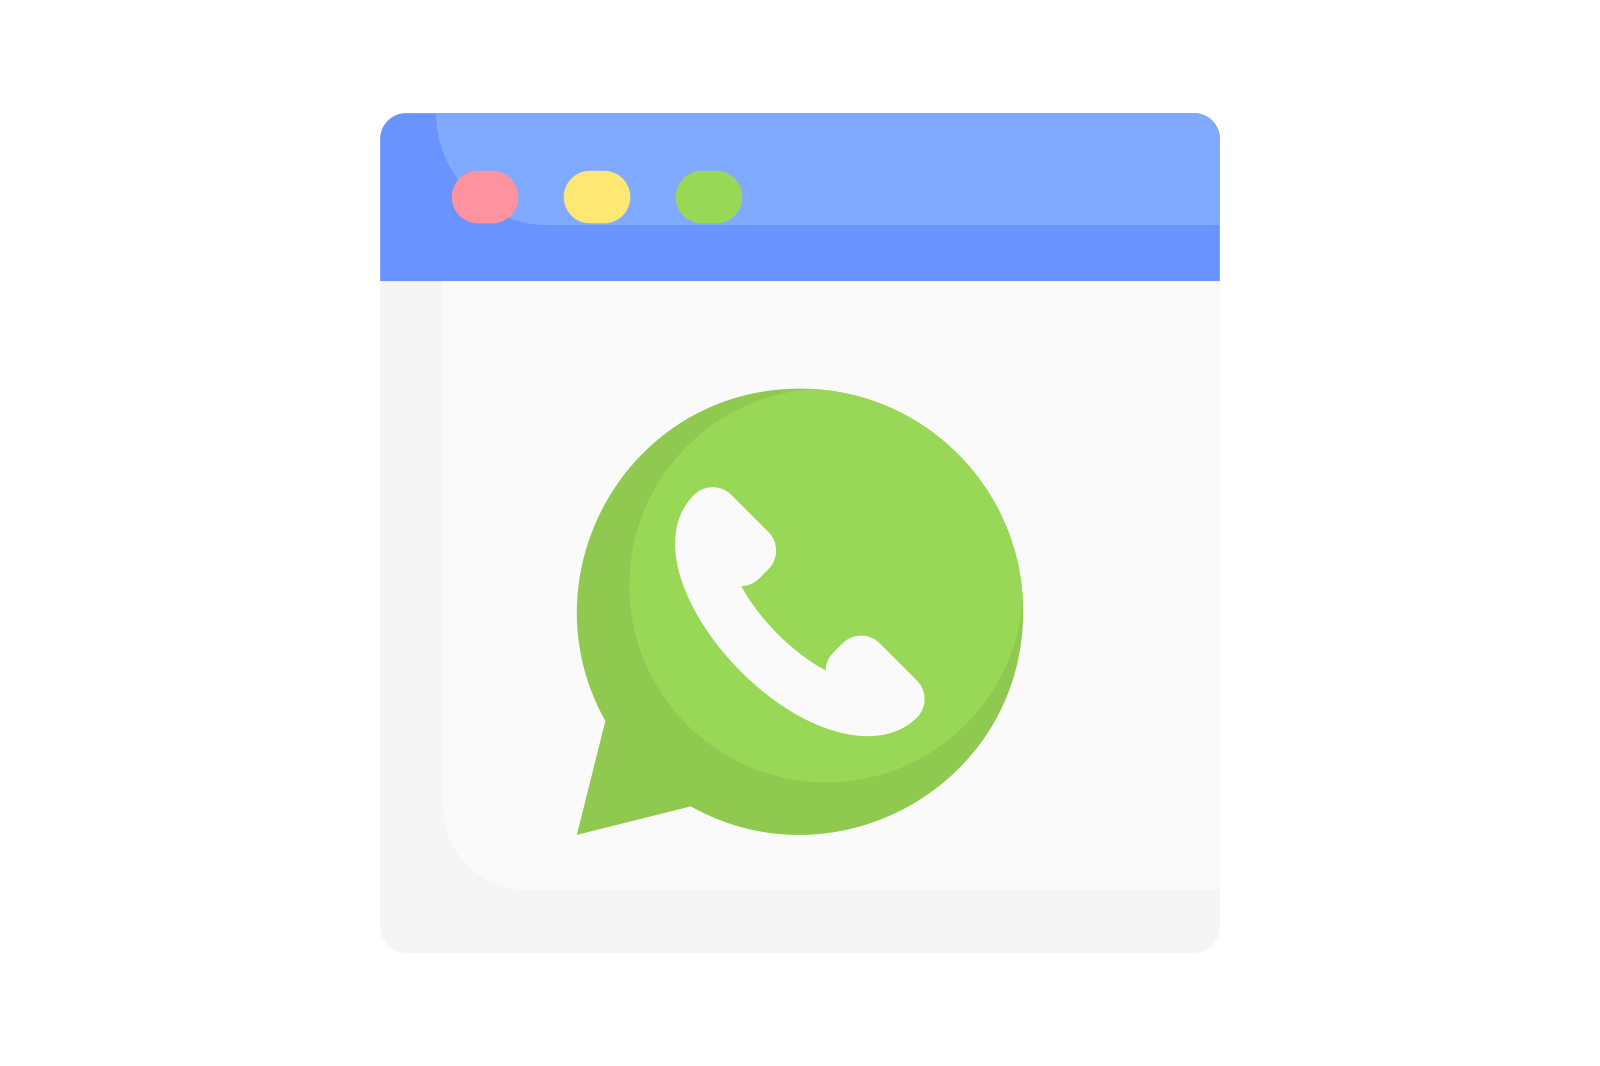 Delivery personalizado integrado com Whatsapp